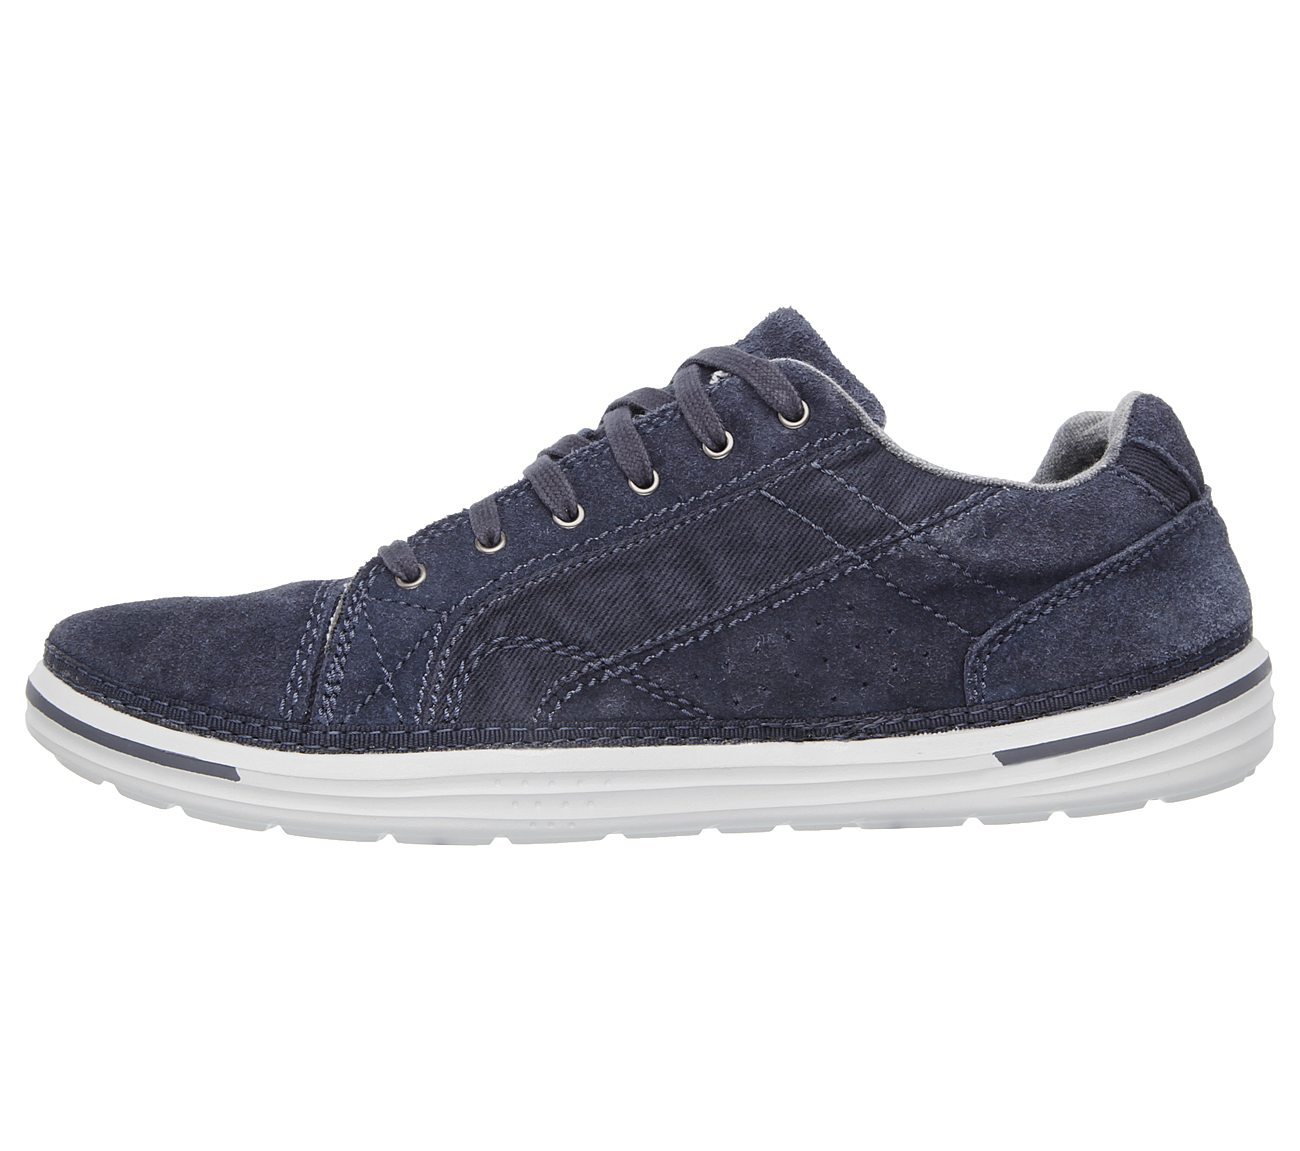 Buy SKECHERS Relaxed Fit: Landen - Buford Modern Comfort Shoes only $64.00